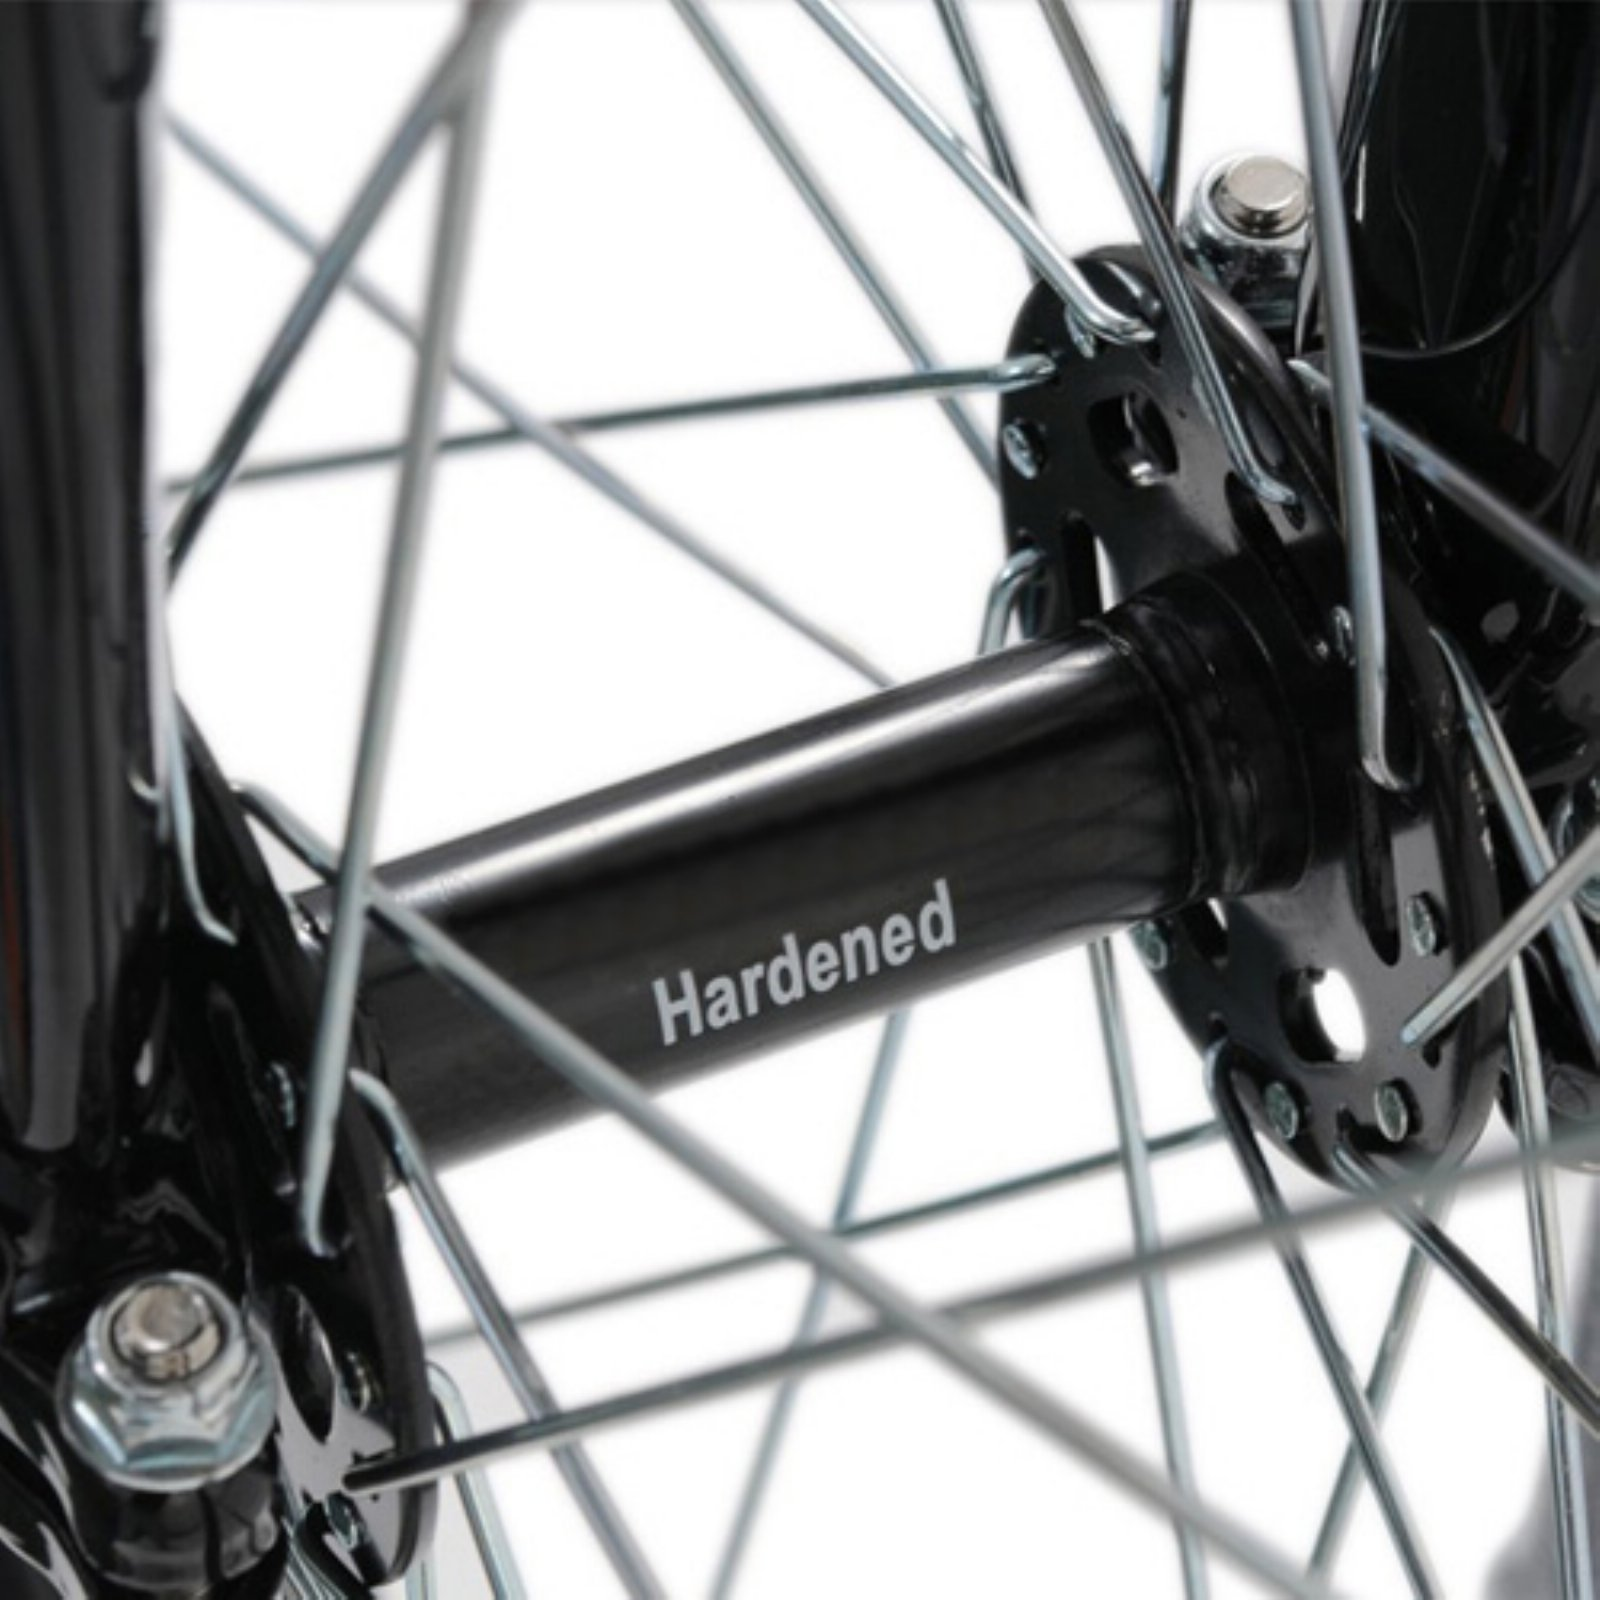 Club 26'' Road Unicycle - Black by Unicycle.com (Image #3)